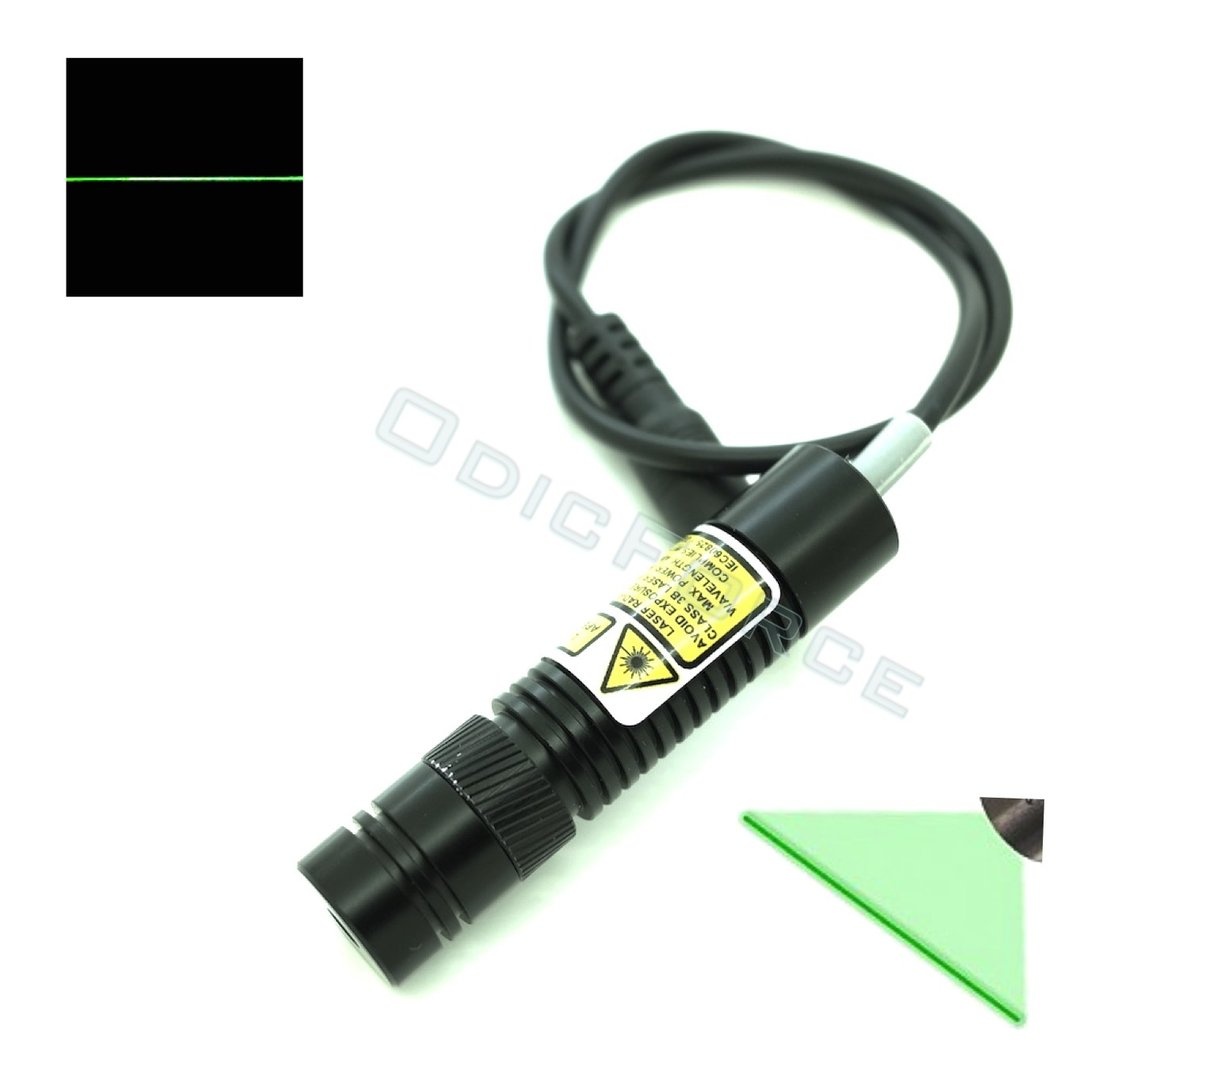 20mW Green (520nm) Adjustable Locking Focus Direct Diode Module Line Pattern (16mm, 3-5V)